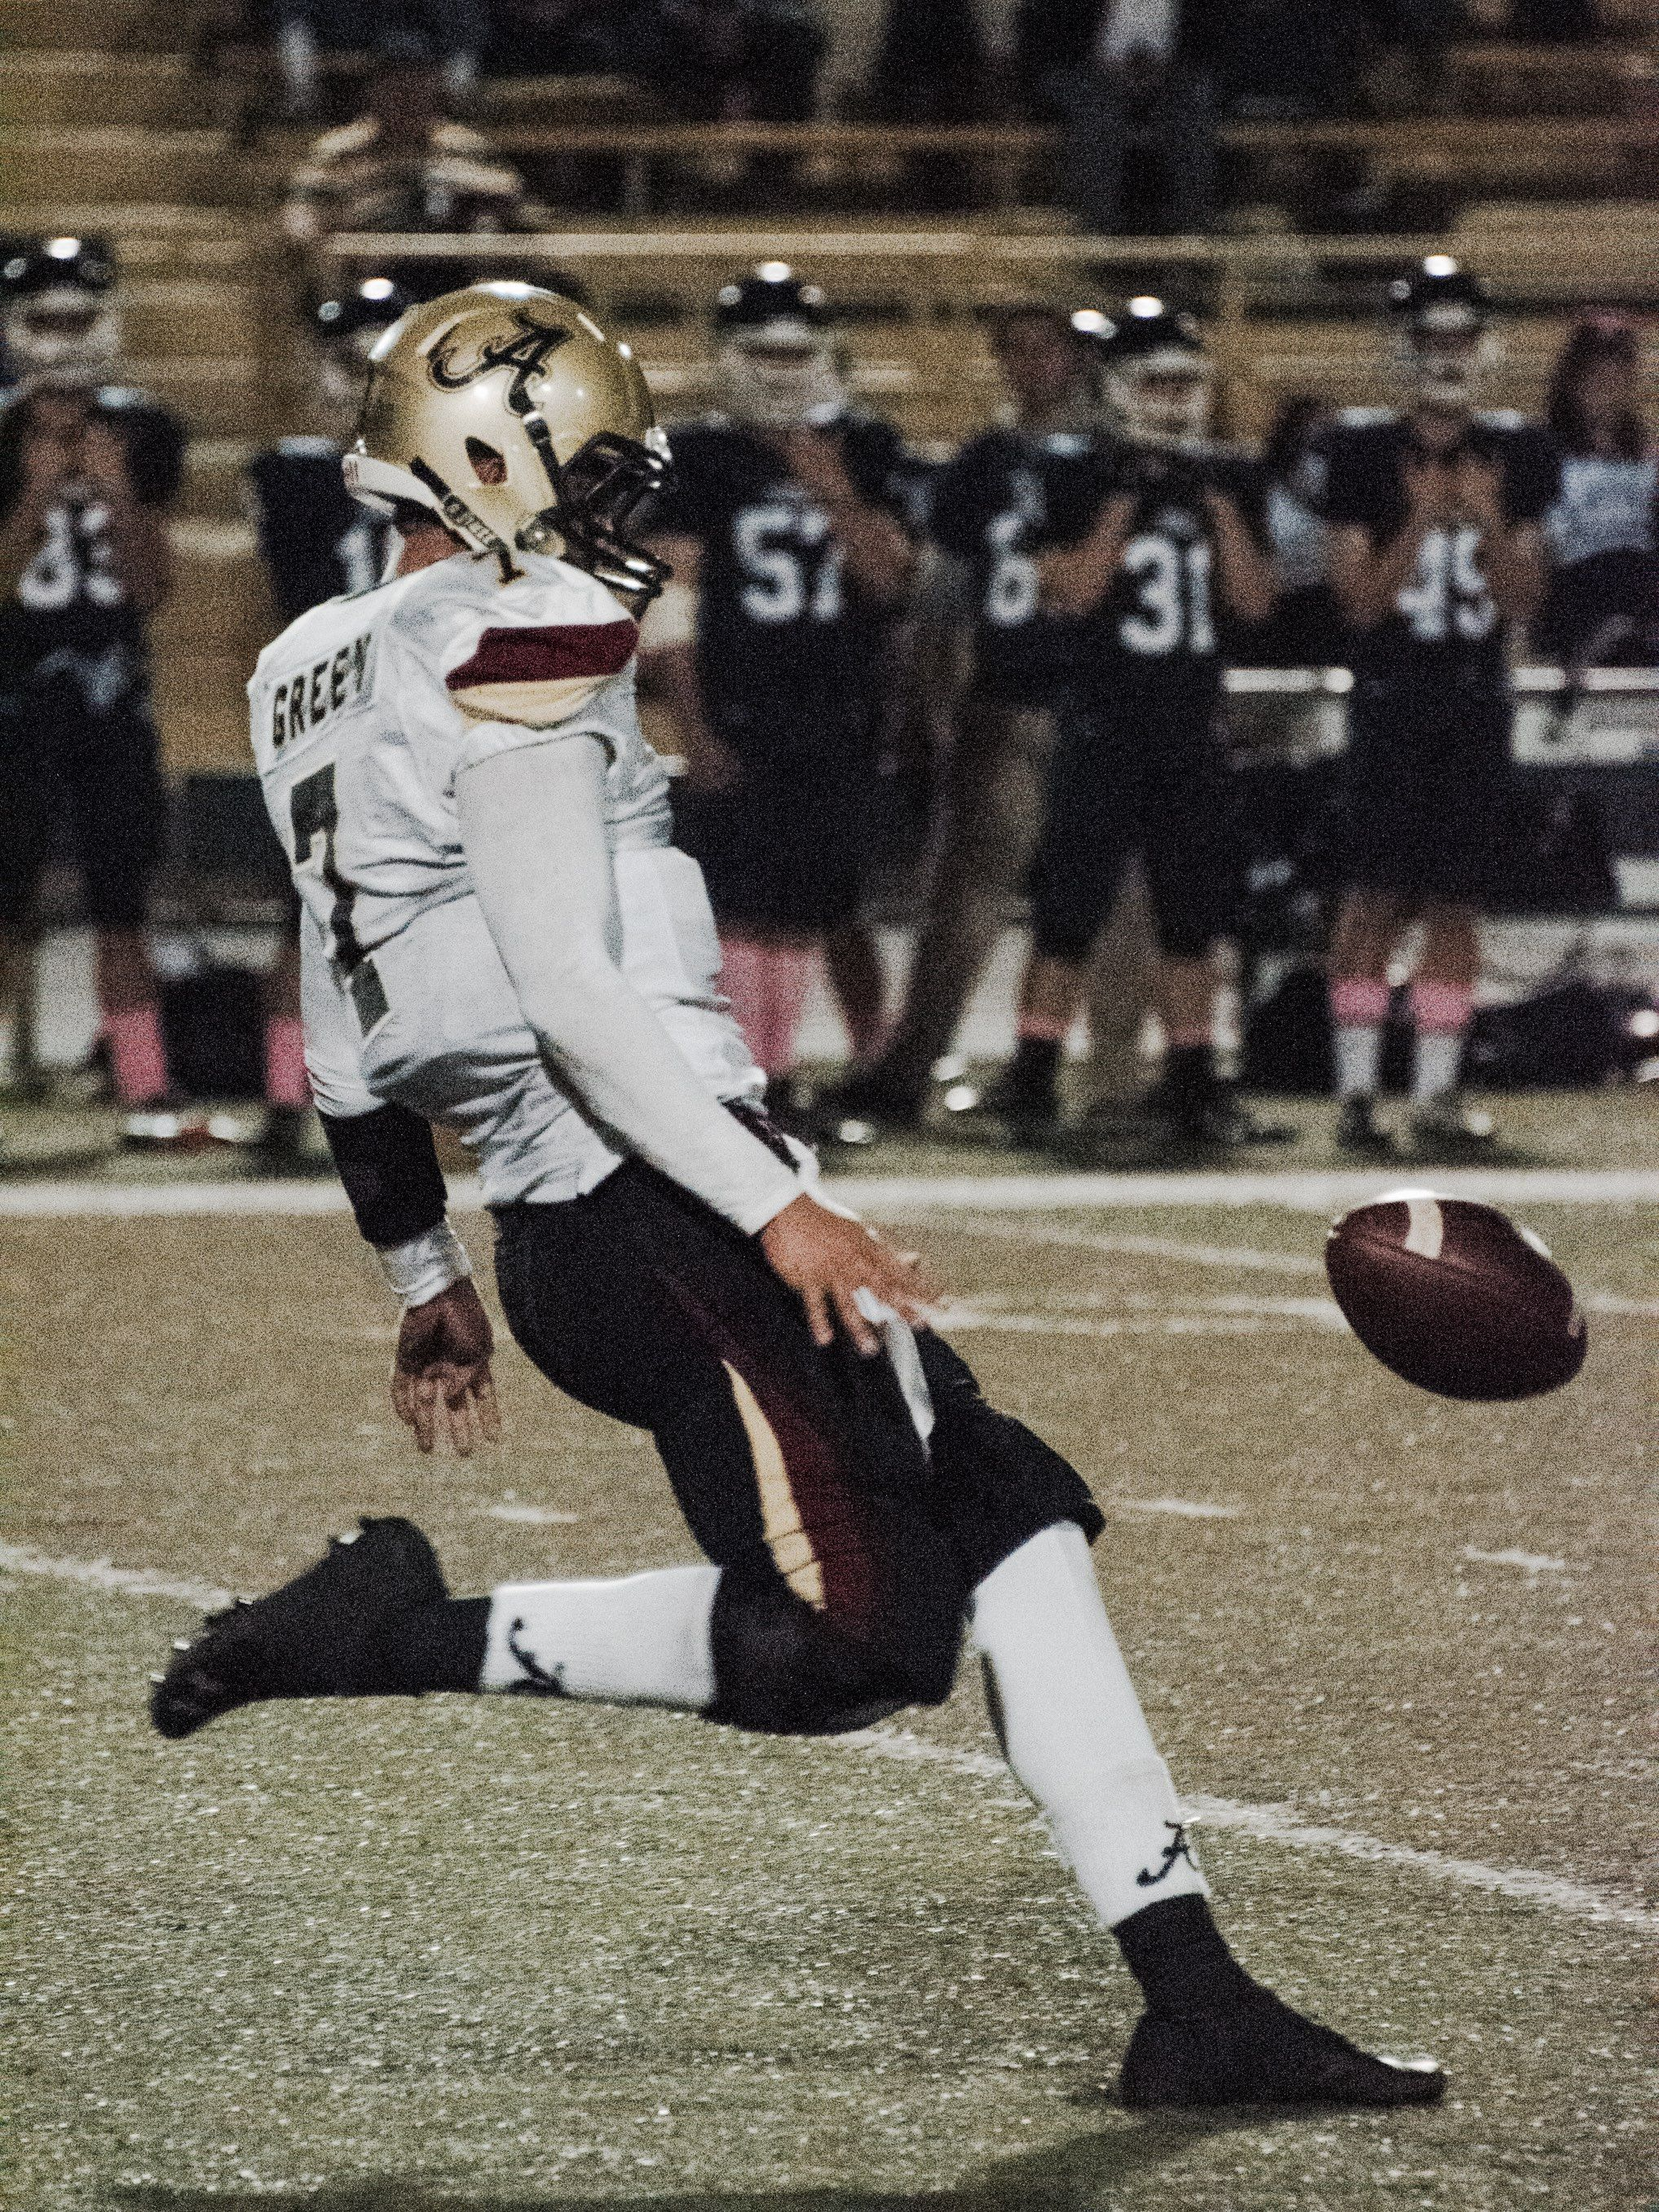 Alemany's Blake Green in mid Punt! Such an awesome